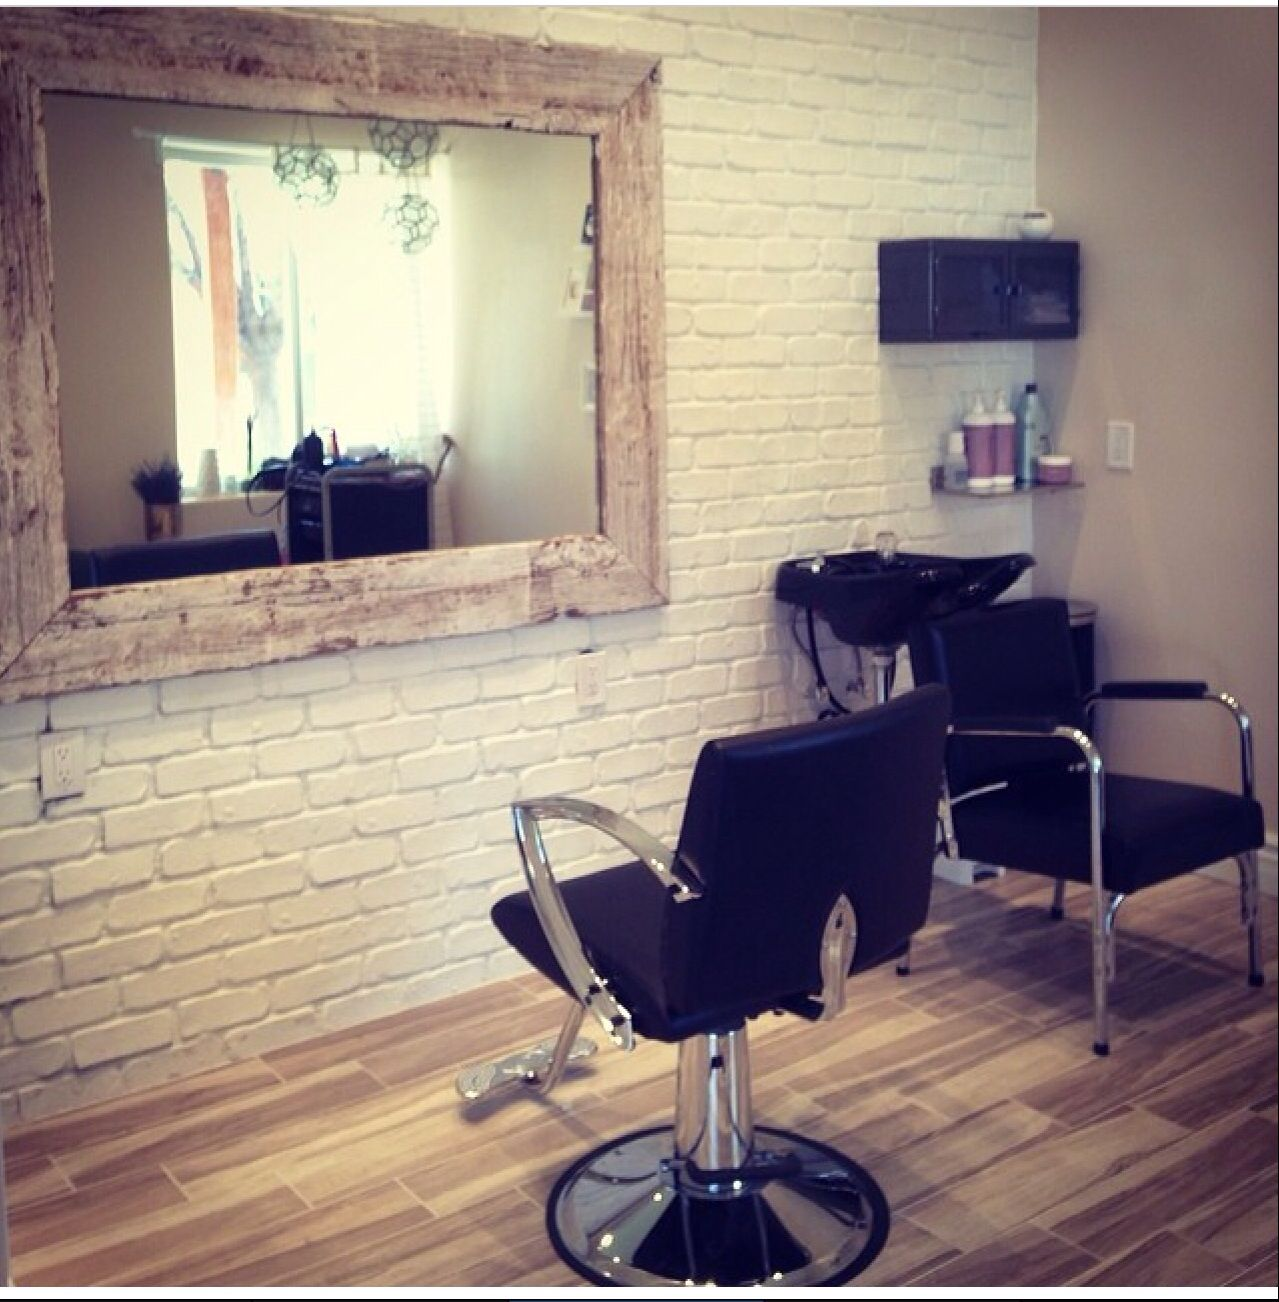 Hair haus salon home salon spa inspiration for How to make a beauty salon at home